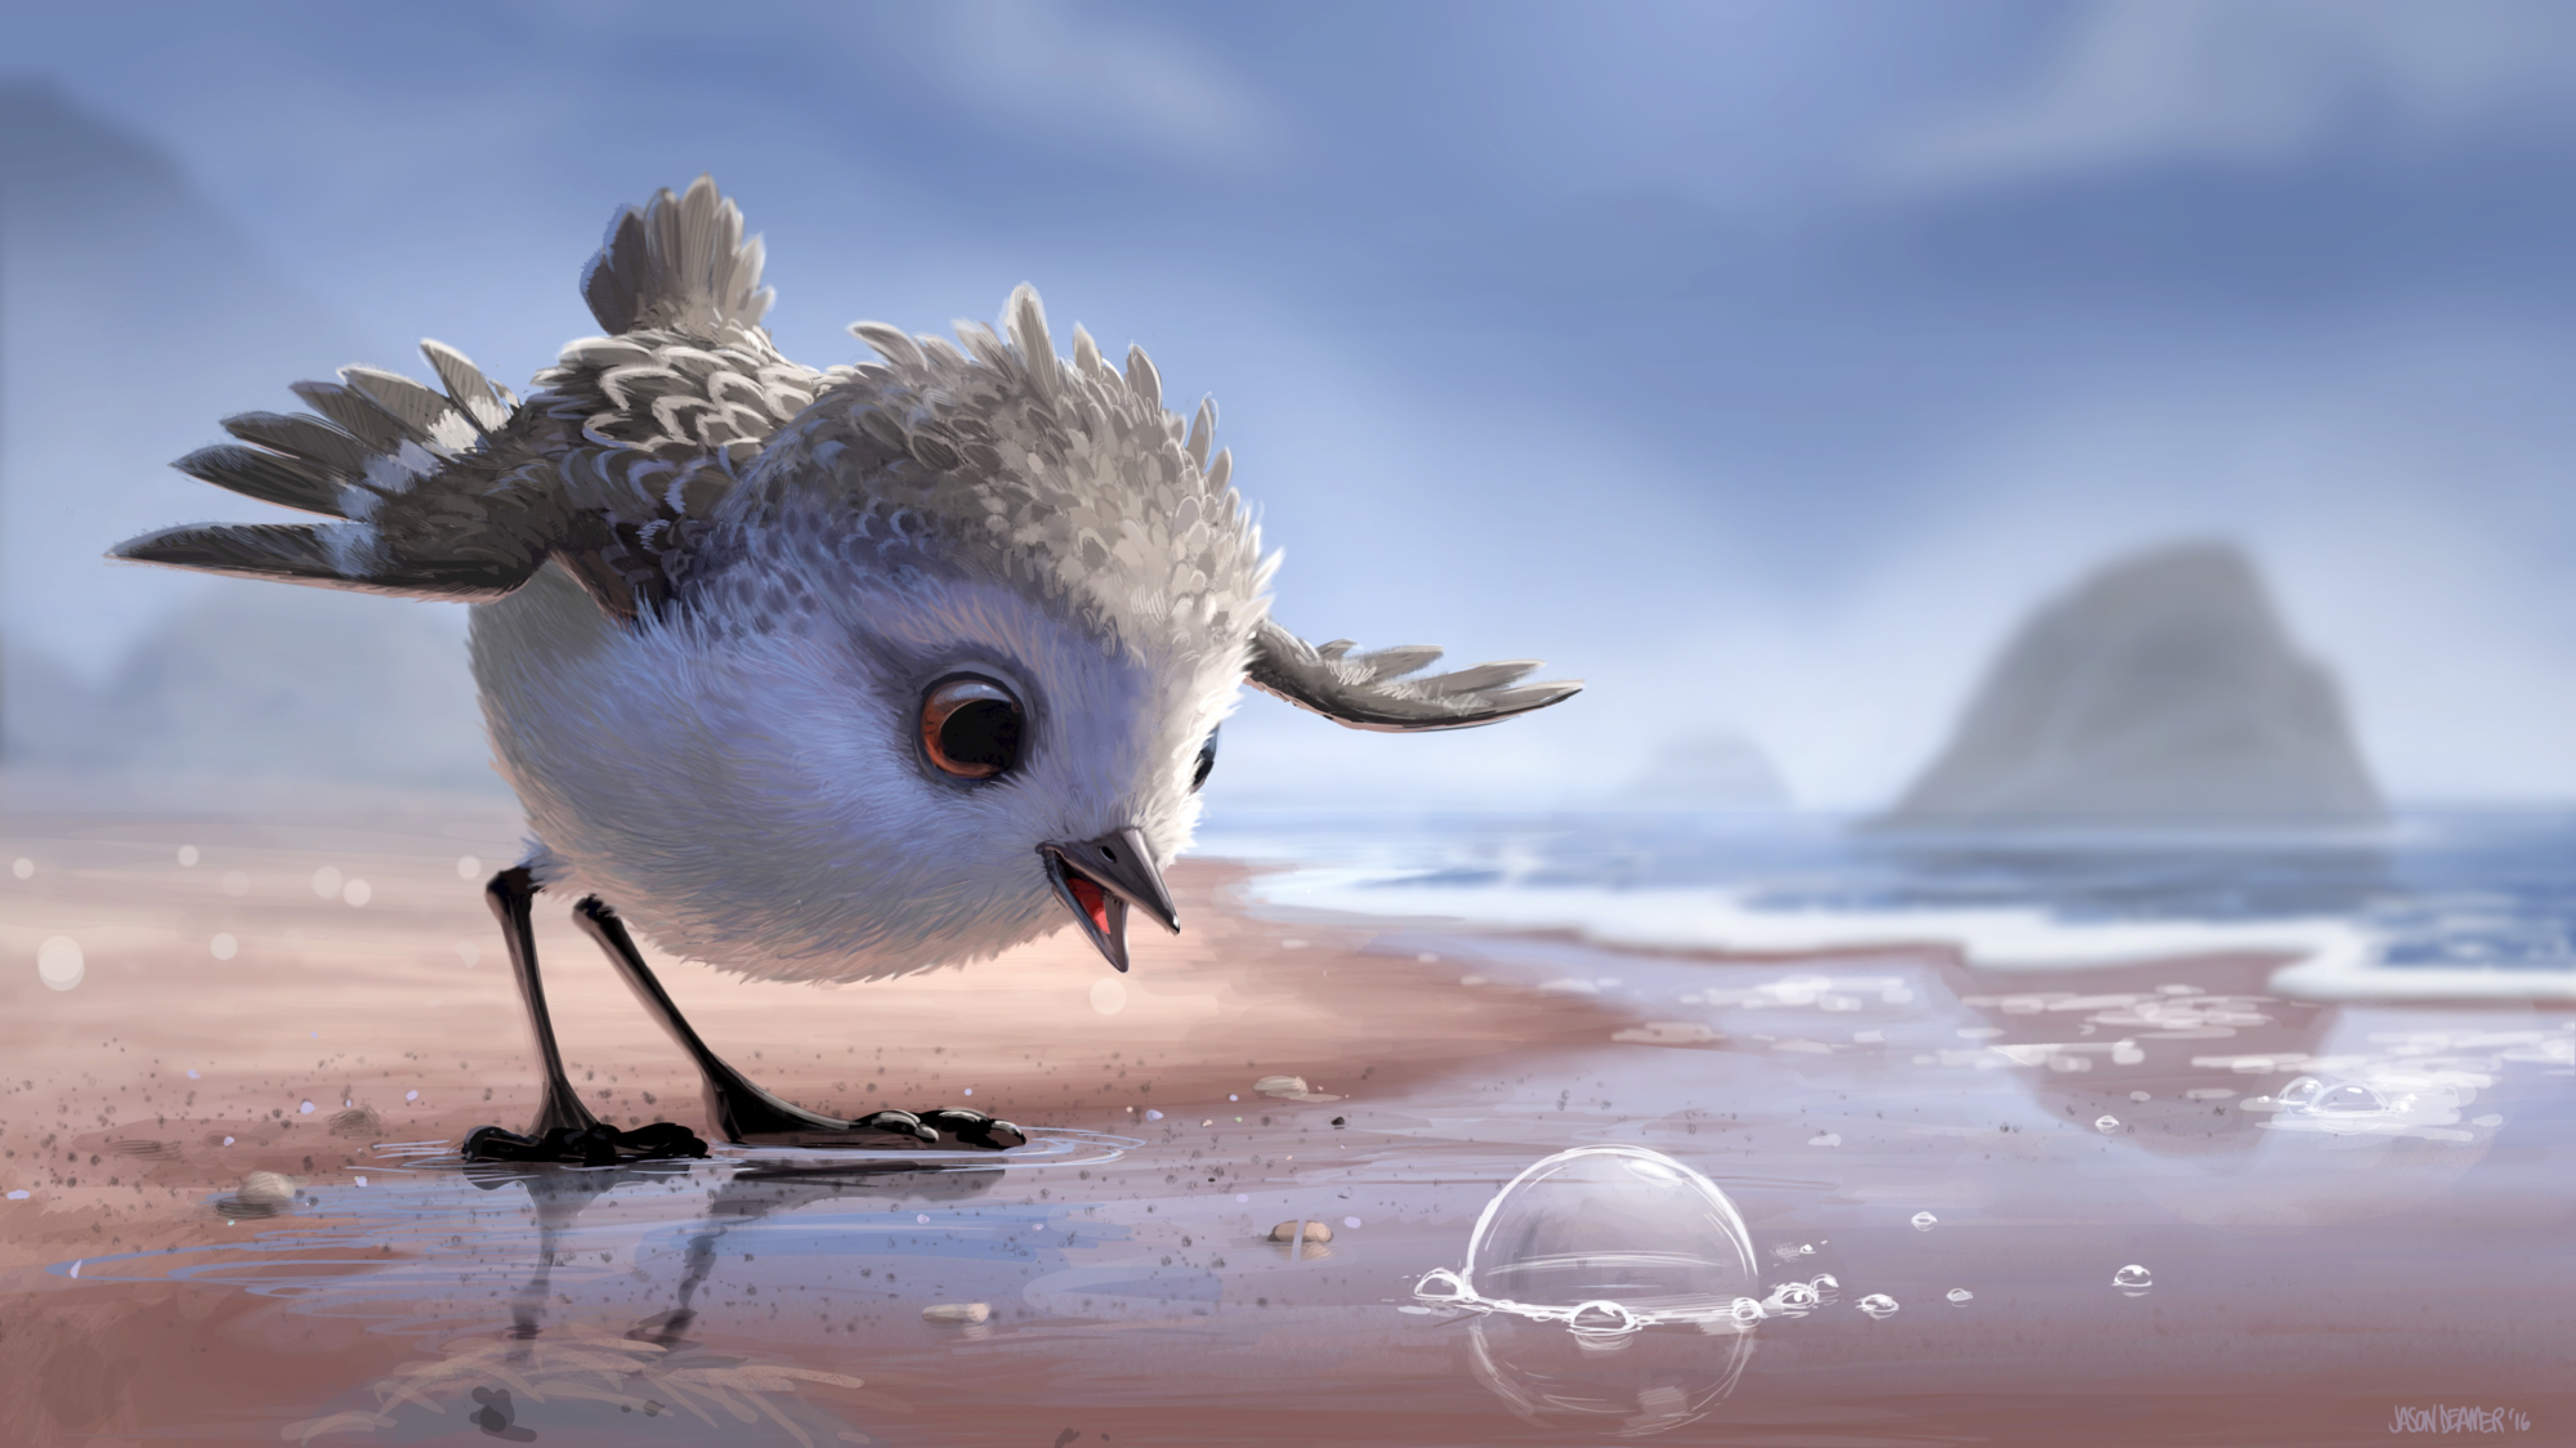 pixar short film piper: watch the first footage from pixar's best